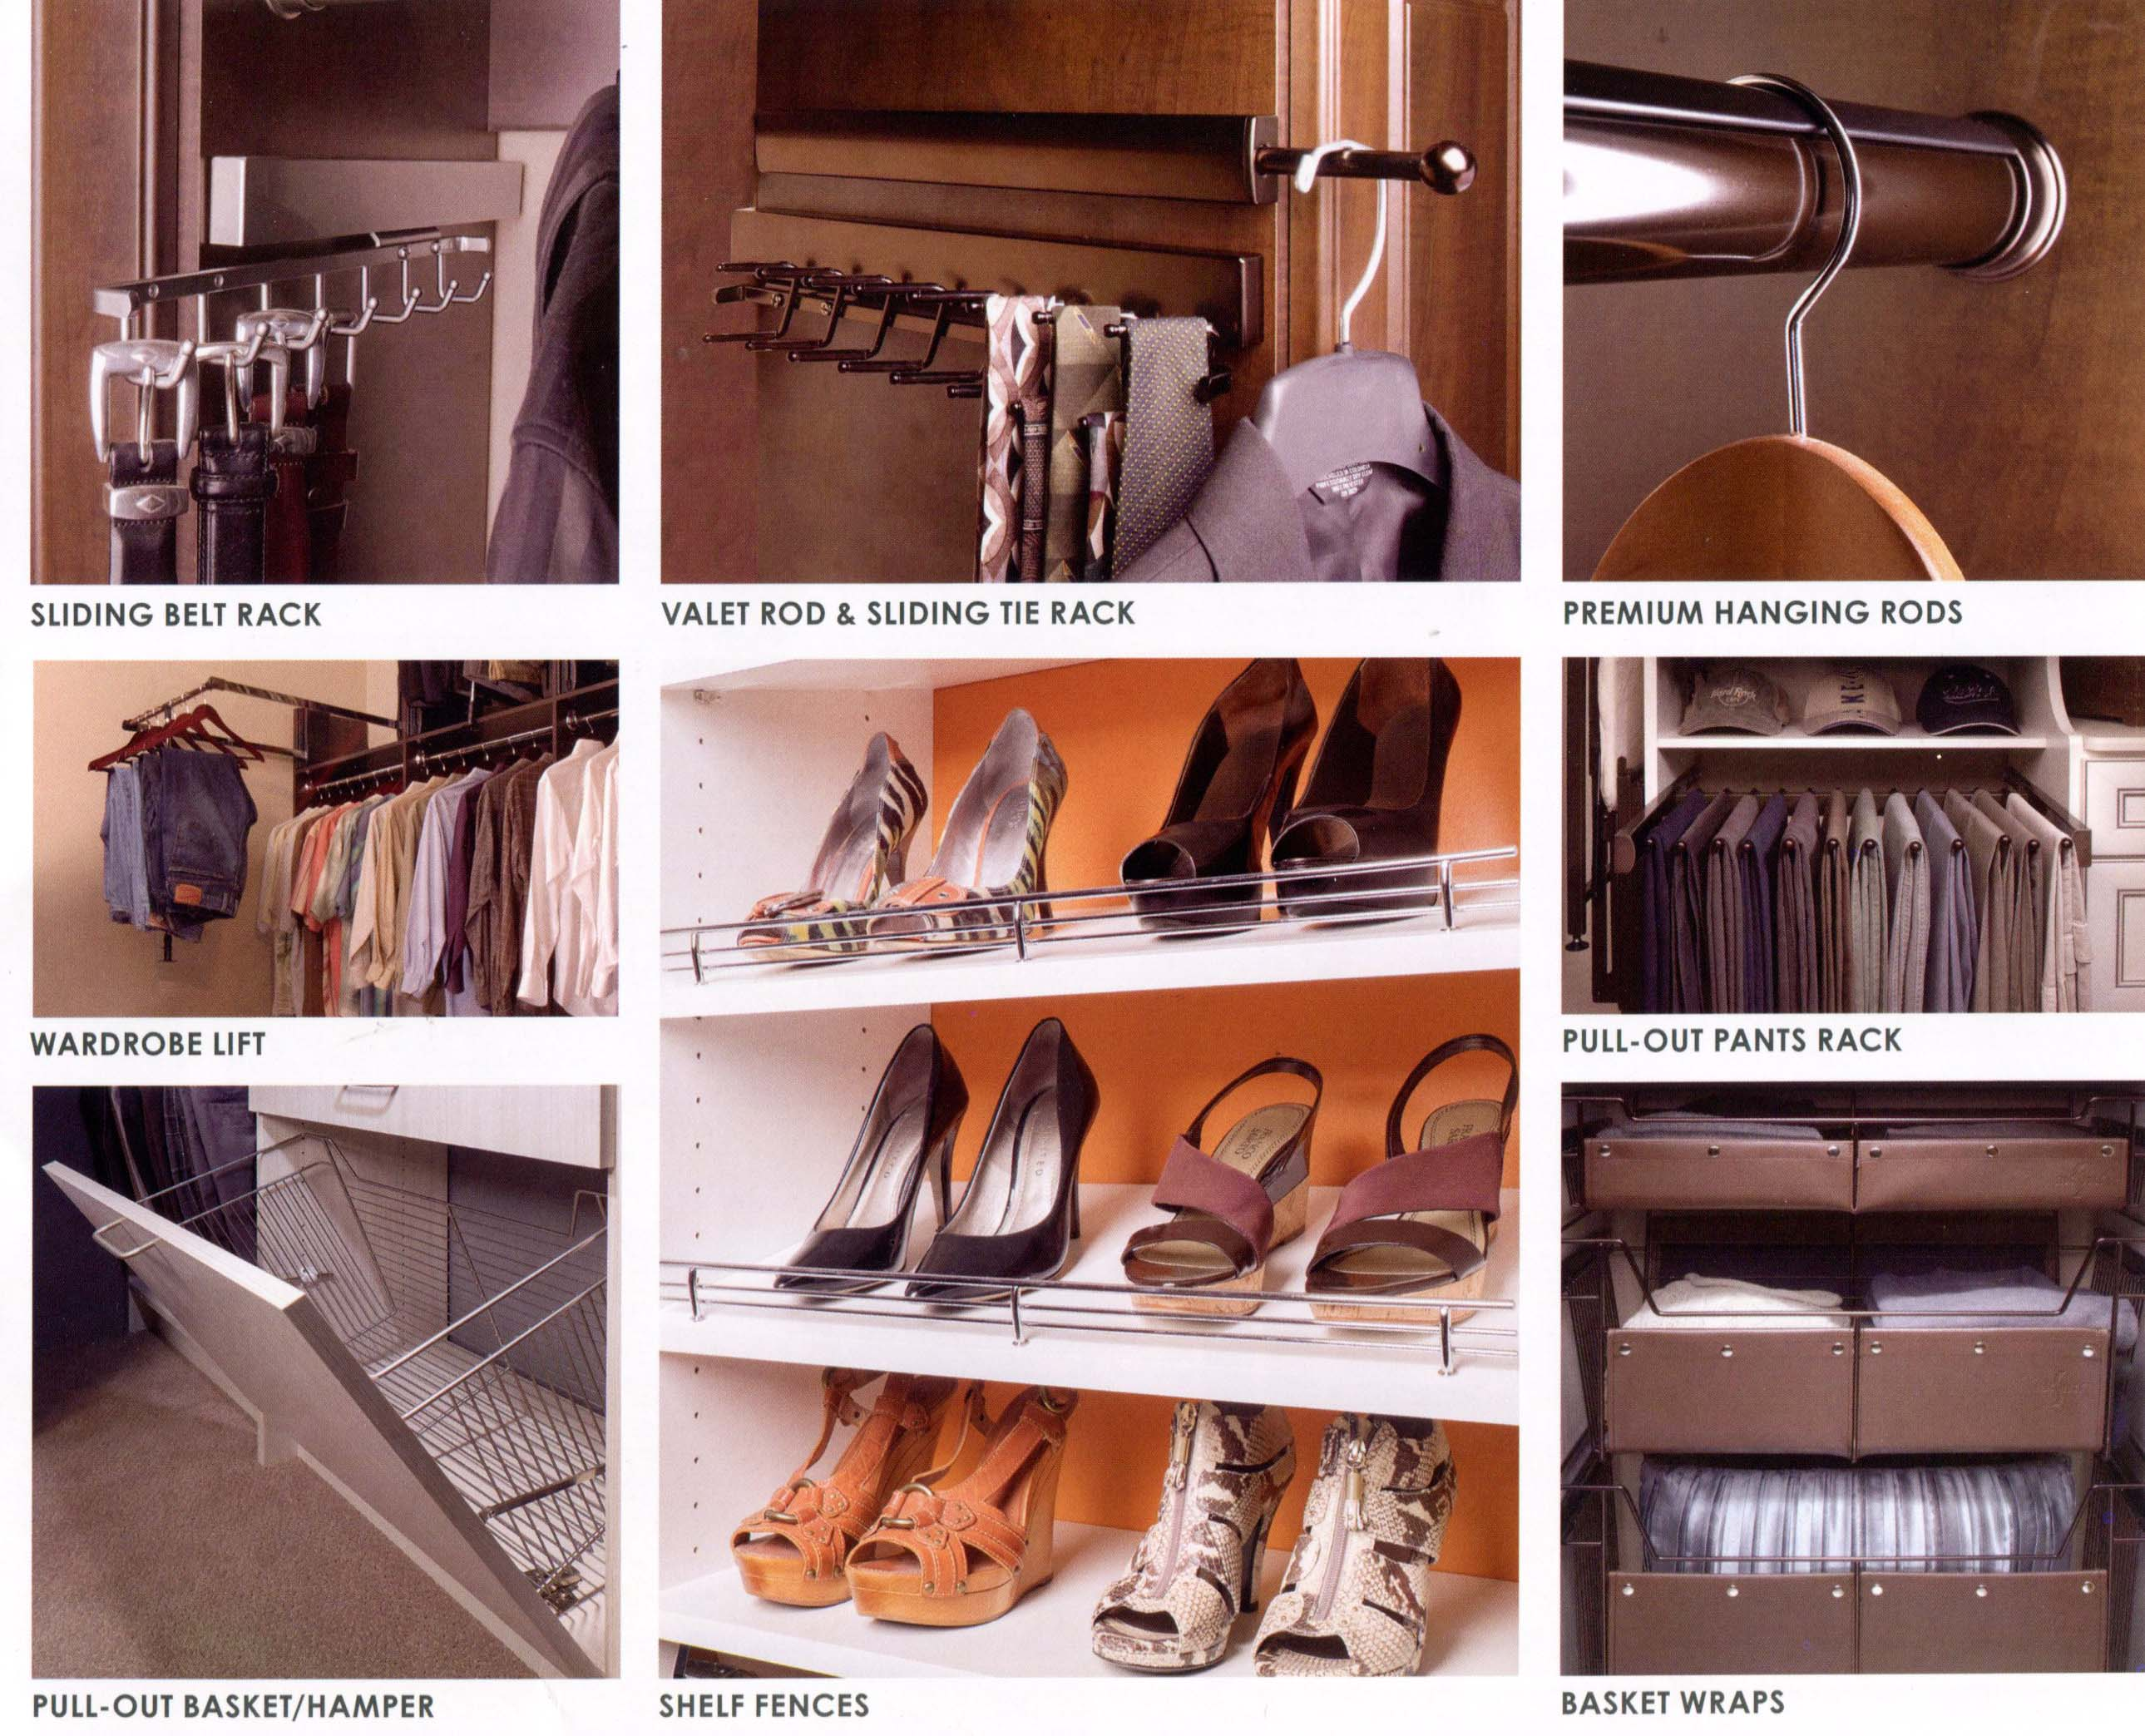 Sliding Belt Rack - Sliding Valet and Sliding Tie Rack - Premium Hanging Rods - Wardrobe Lift - Pull-Out Pants Rack - Pull-Out Basket Hamper - Shelf Fences - Basket Wraps